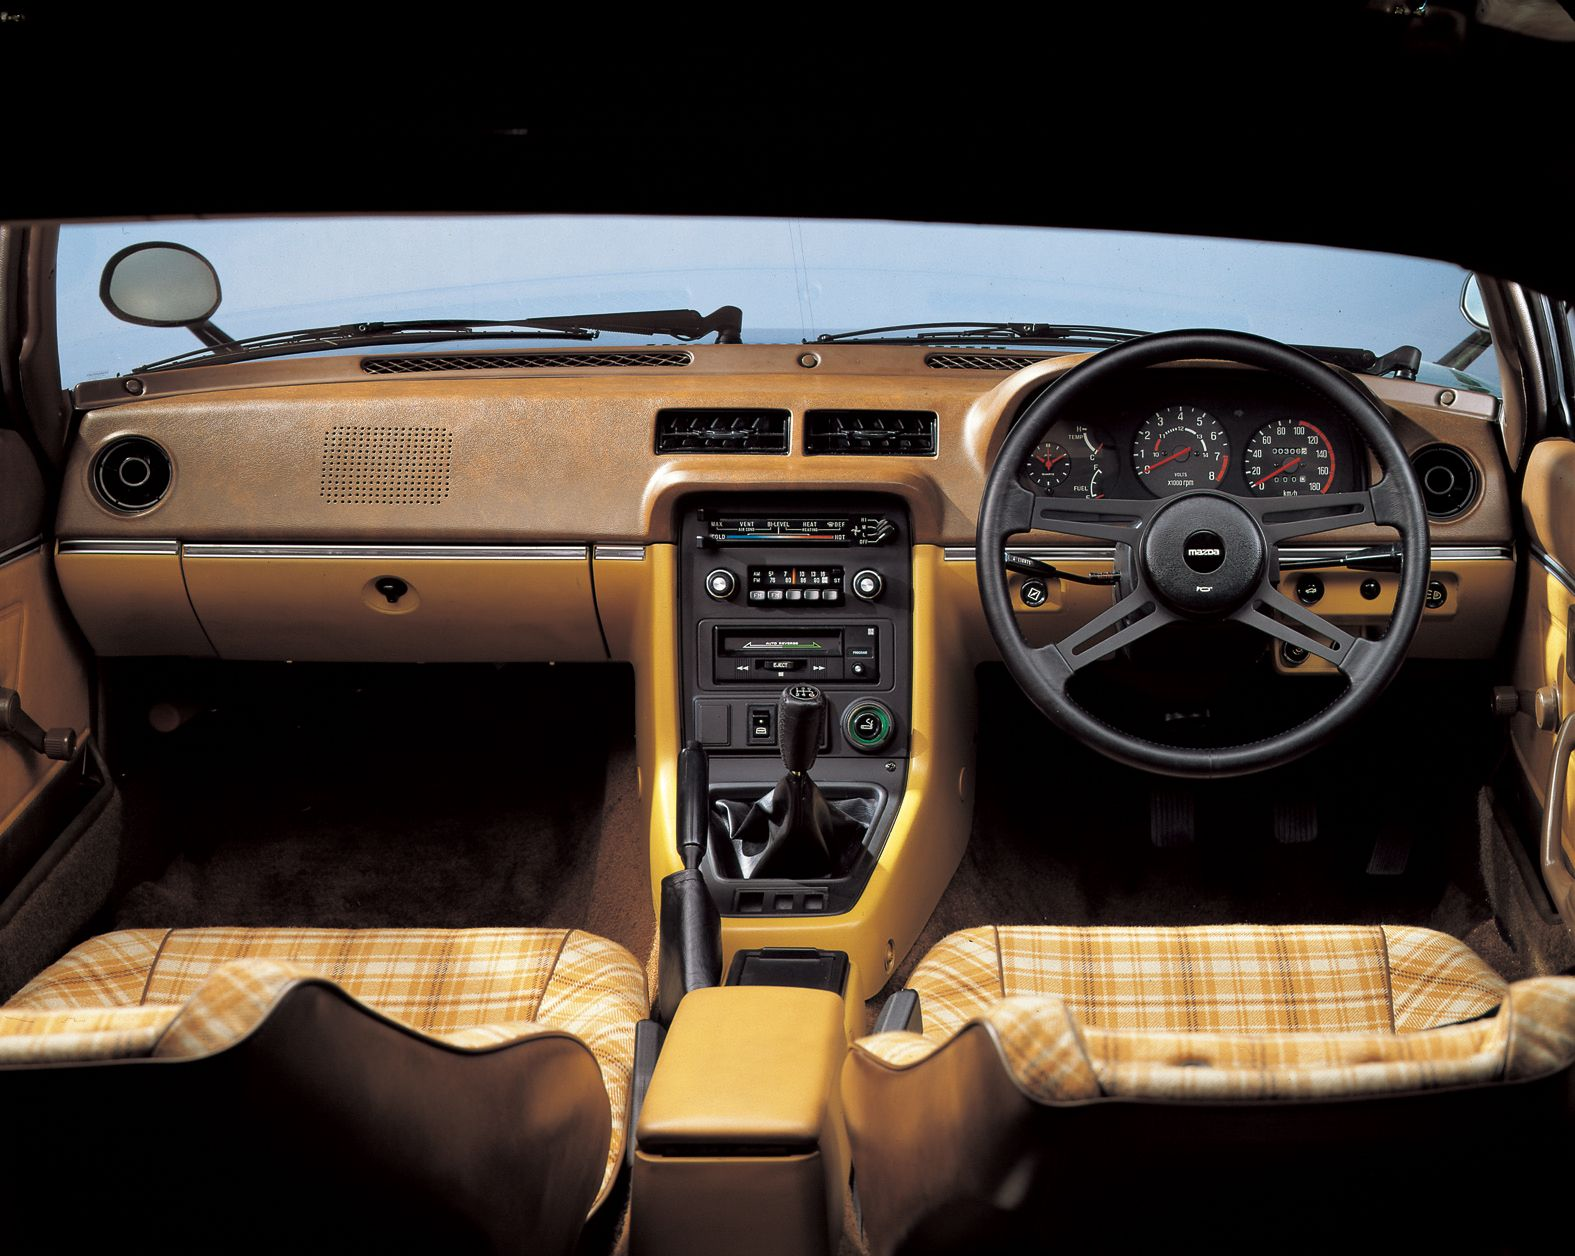 Mazda RX-7 Savanna 1980 interior